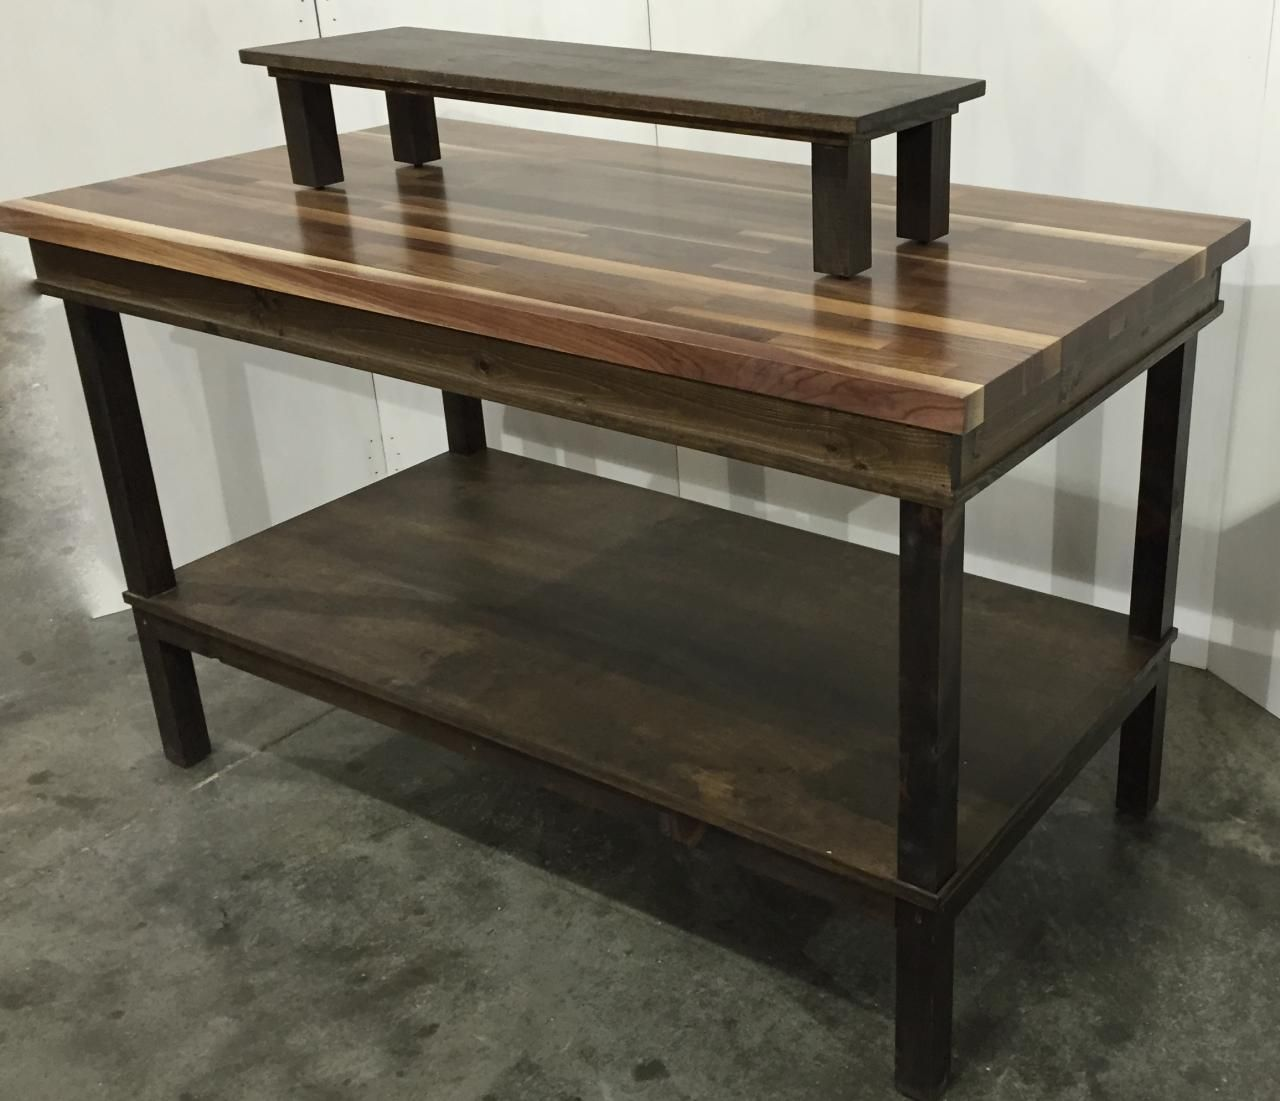 Rustic Wood Custom Retail Display Table With Riser